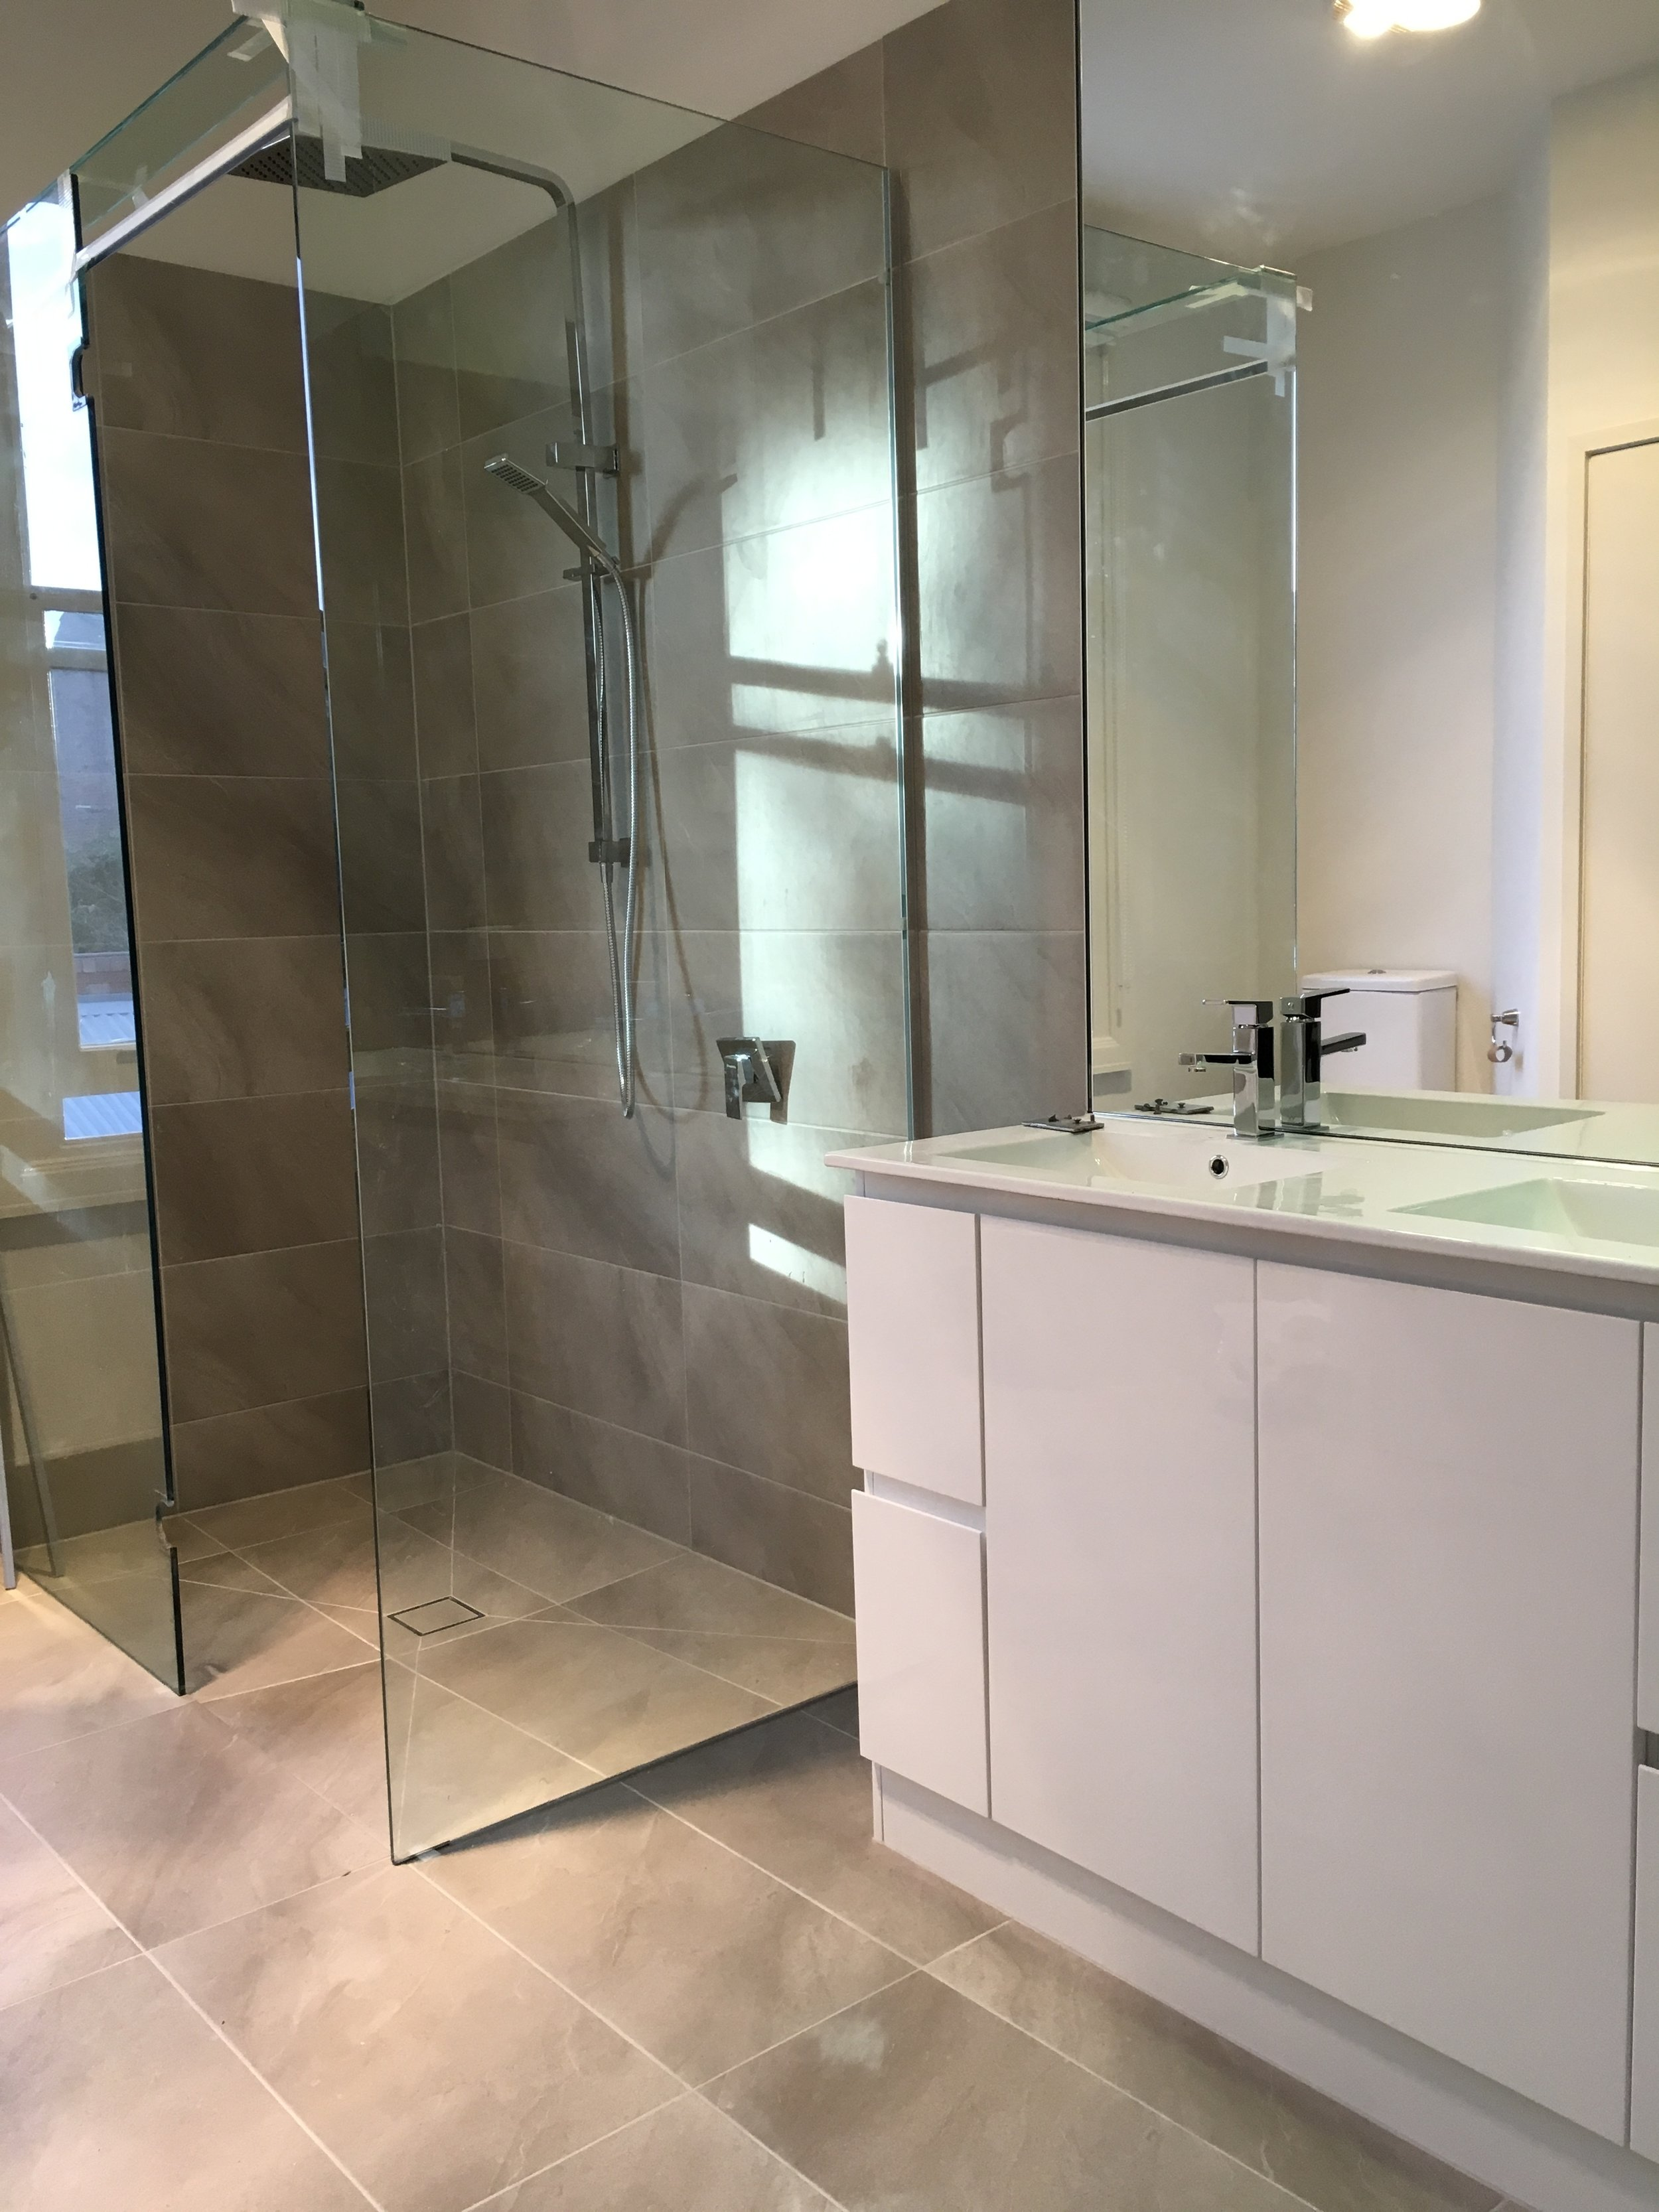 Small Renovations Melbourne New Builds Bathroom Renovations Kitchen Renovations Nsn Cre 8 Tiv